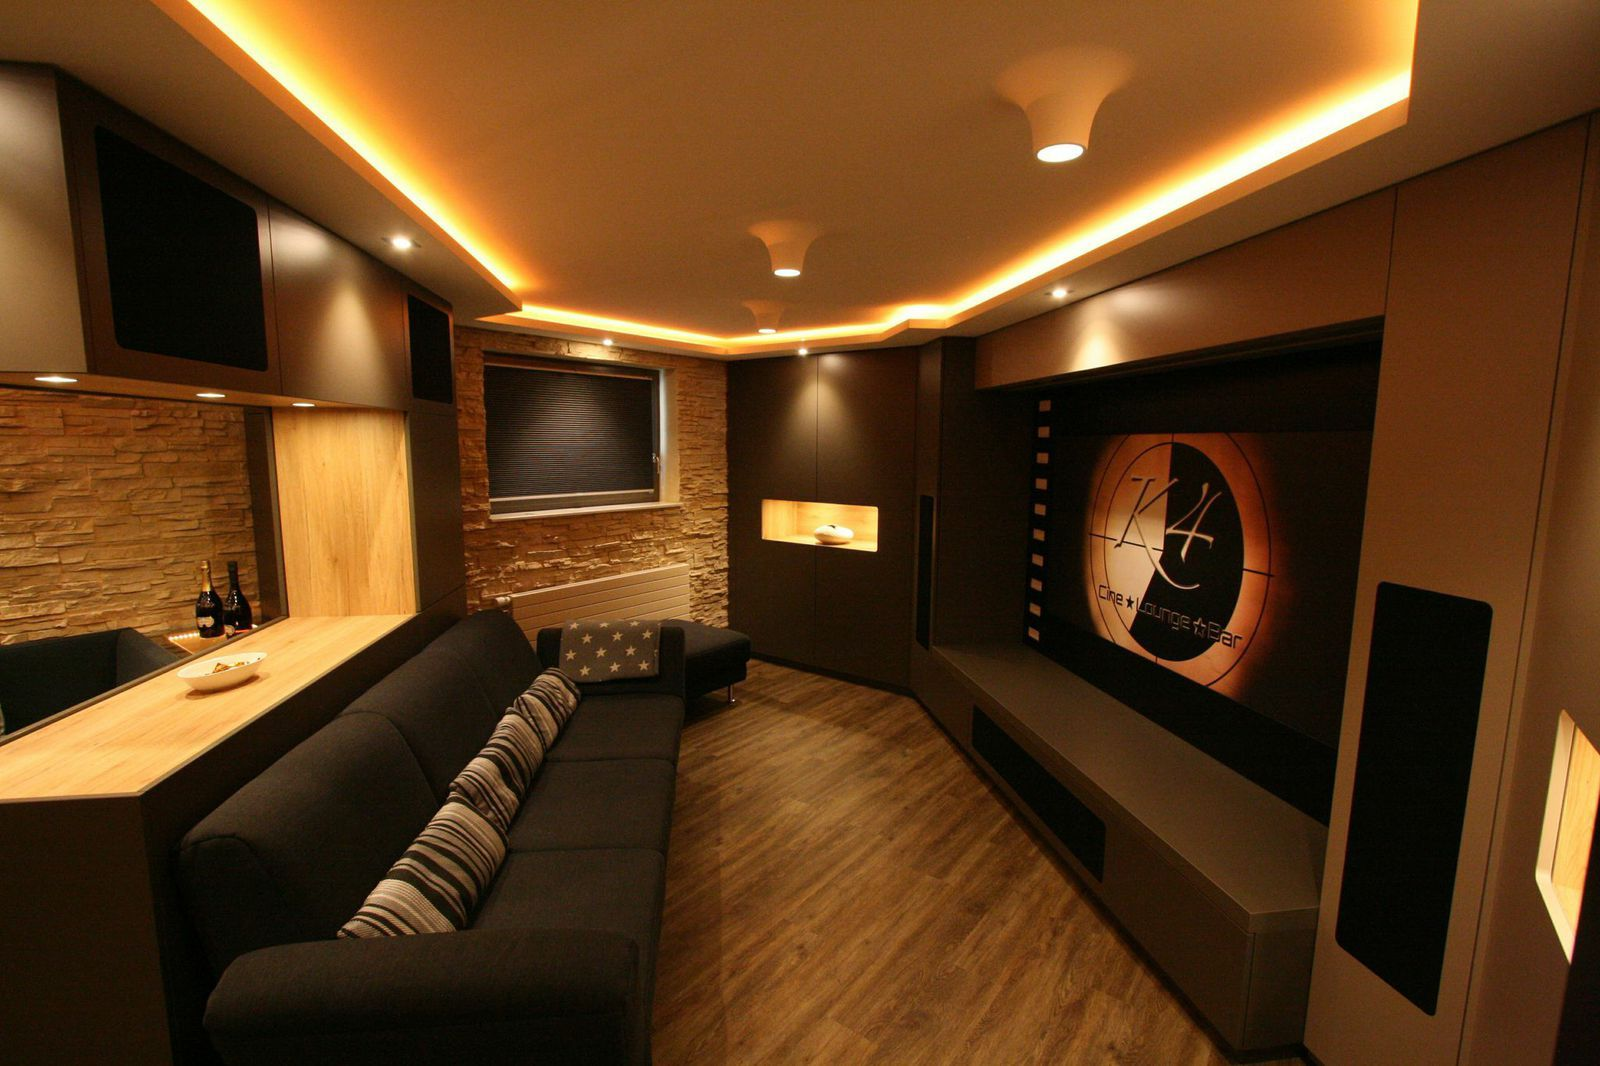 Heimkino K4 Cine Lounge Bar  Kino  Home theater